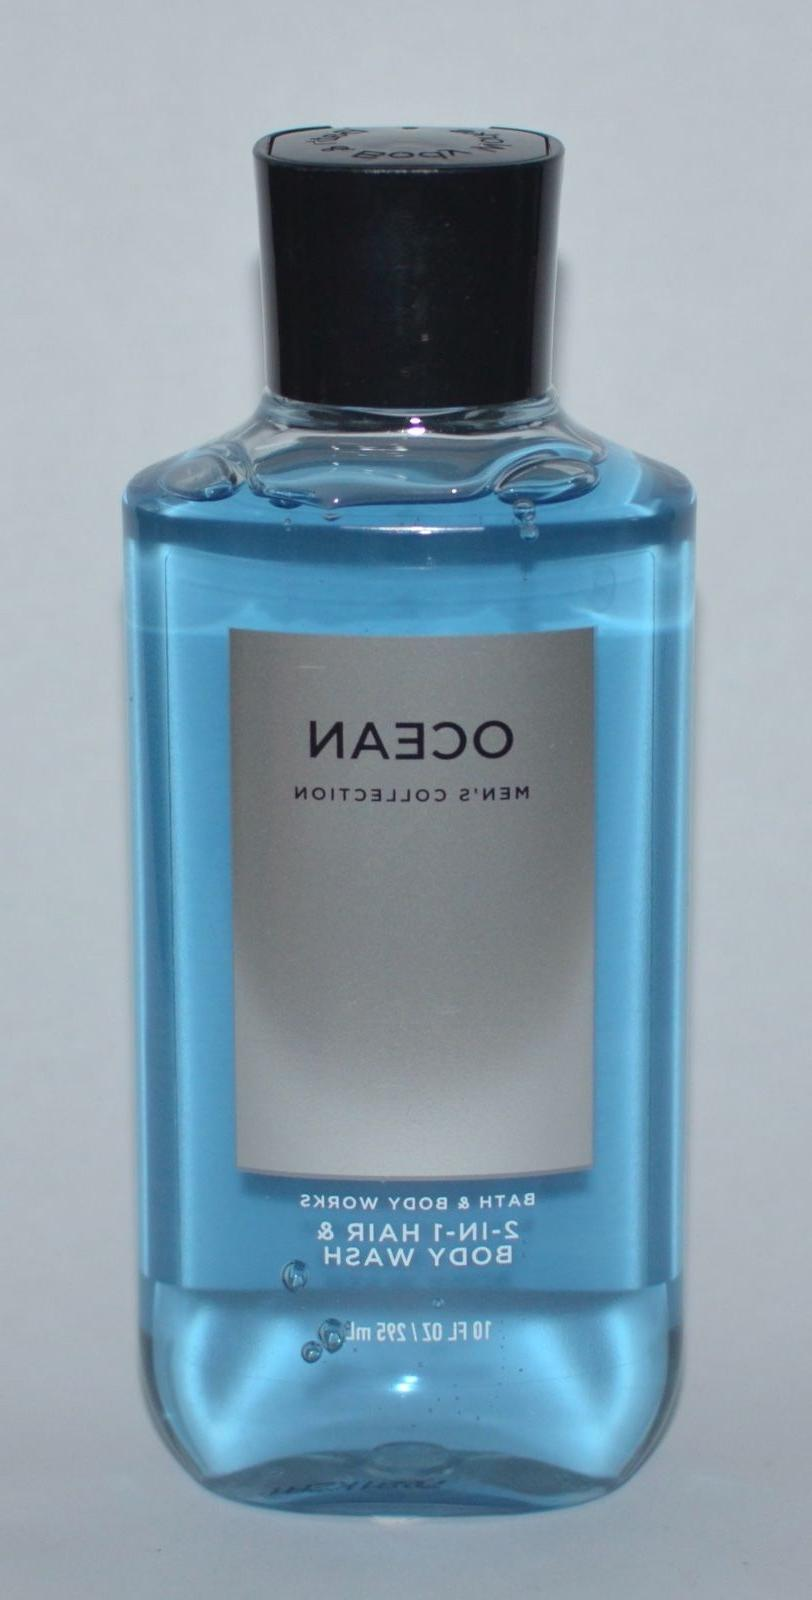 NEW BATH & BODY WORKS OCEAN MEN'S 2 IN 1 HAIR BODY WASH SHOW